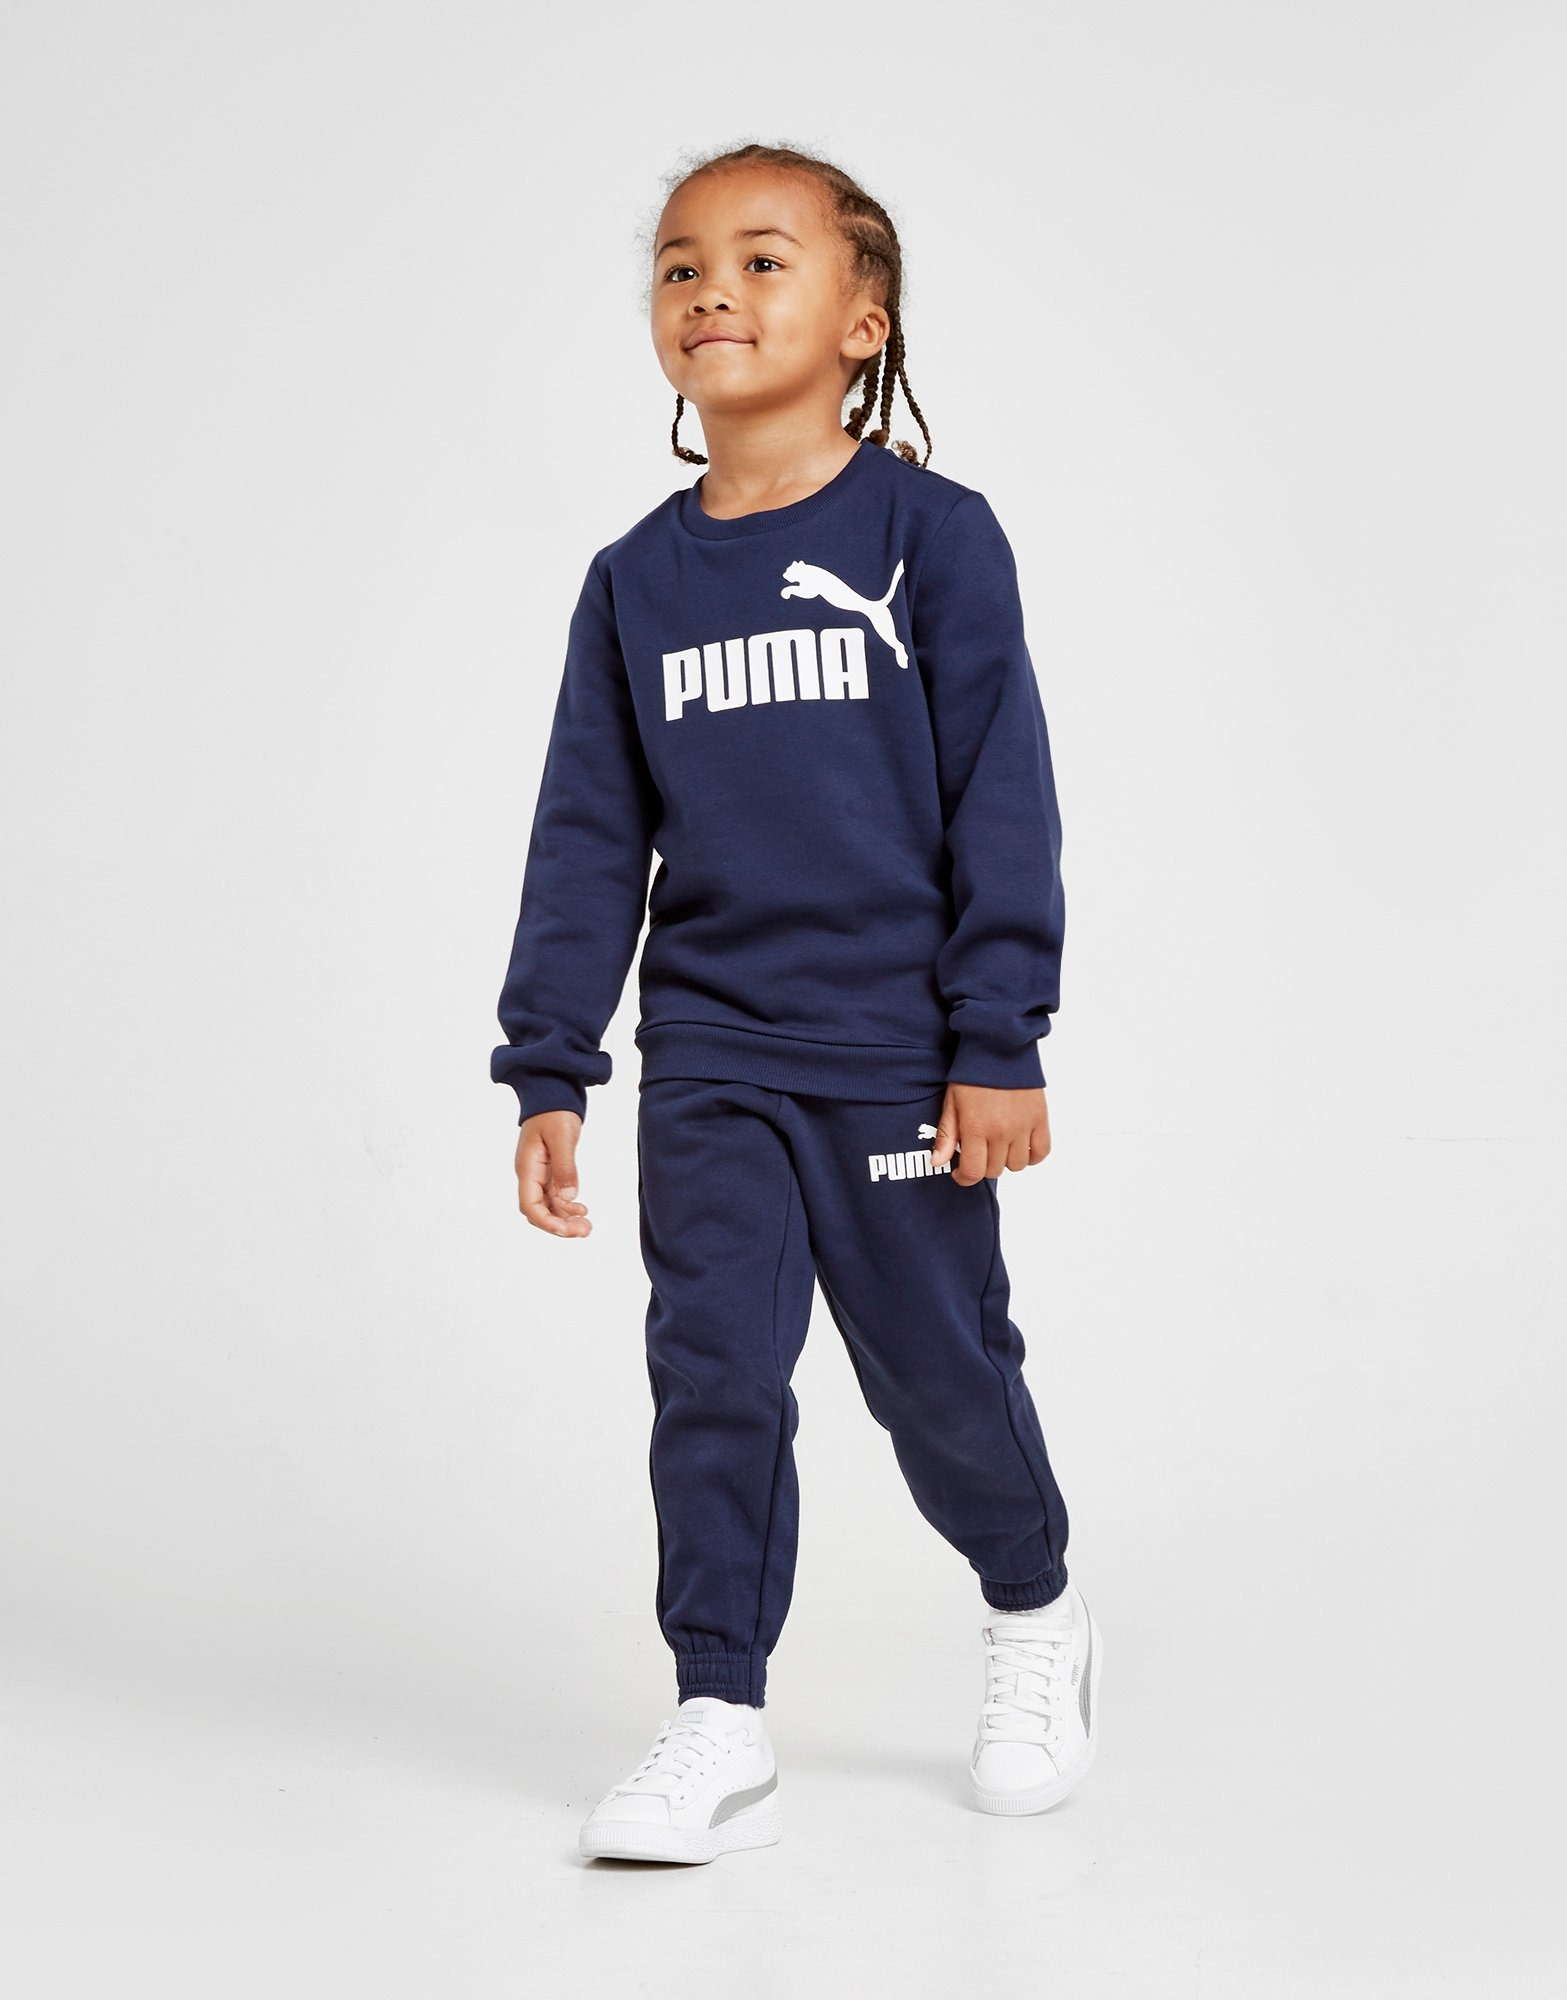 Puma Logo Crew Suit Children by Puma